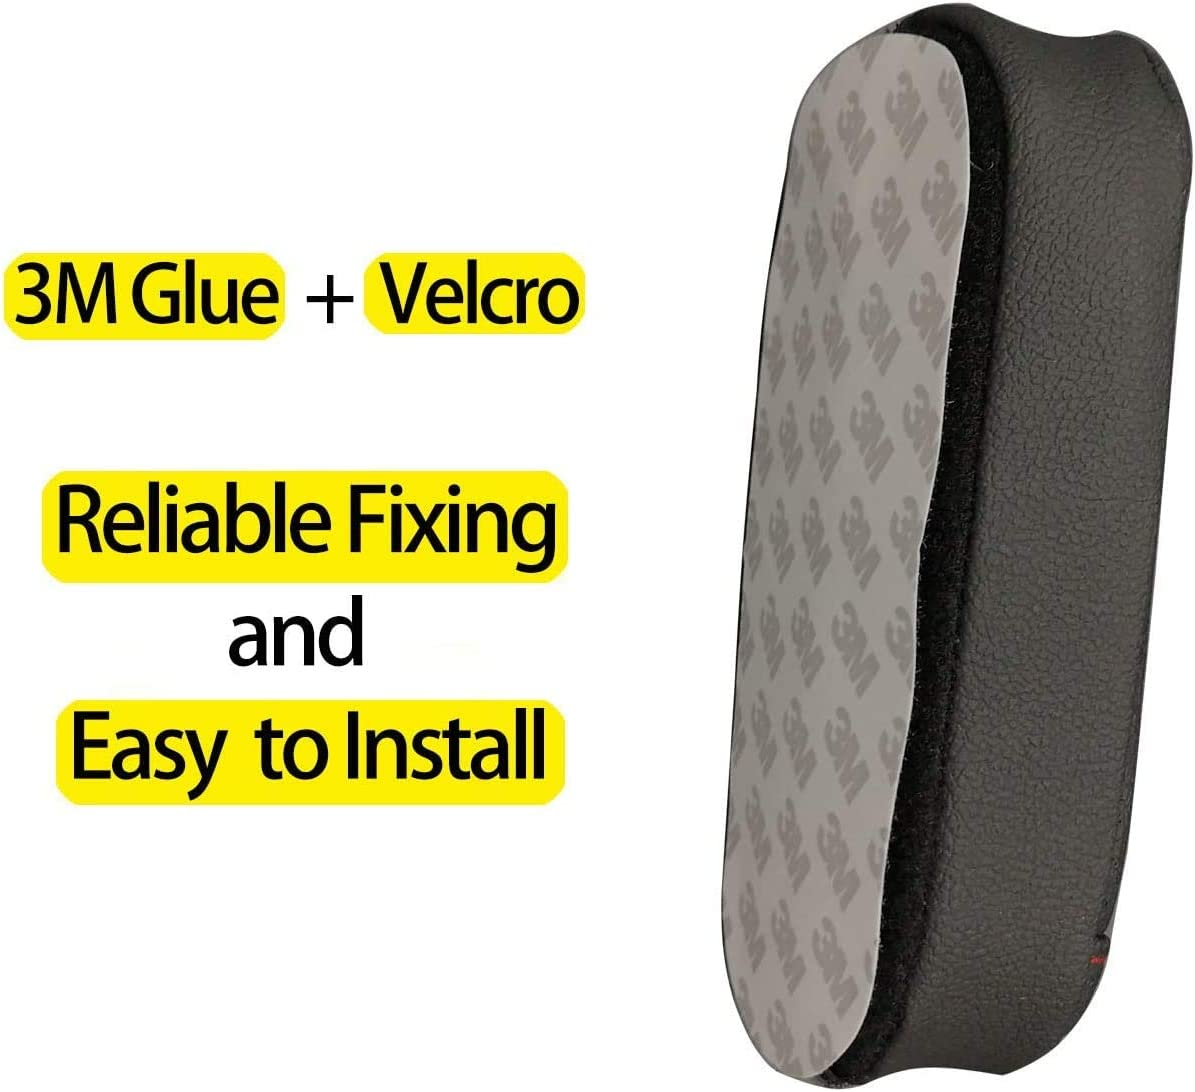 Black Armrest Pad for Car Door,Driver Side Soft Pad for Knee Pain Relief,Knee Pillow for Car Auto Center Console,Universal Car Interior Accessories